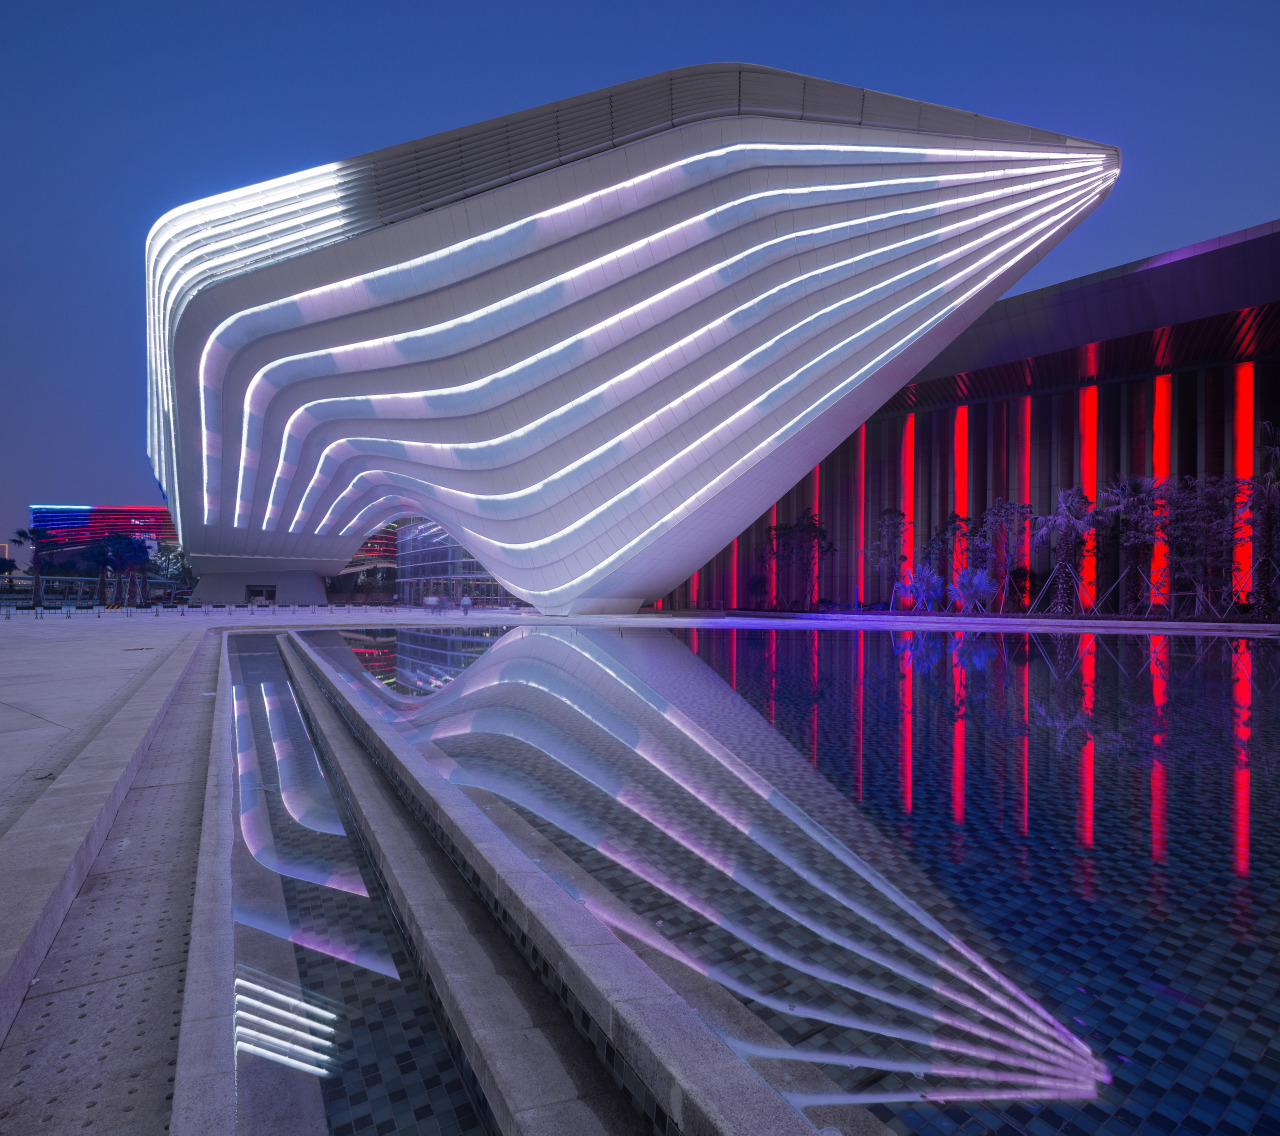 An architectural ribbon winds around the Zhuhai International architecture, building, corporate headquarters, daylighting, facade, landmark, light, lighting, line, metropolis, metropolitan area, purple, reflection, sky, skyscraper, structure, blue, purple